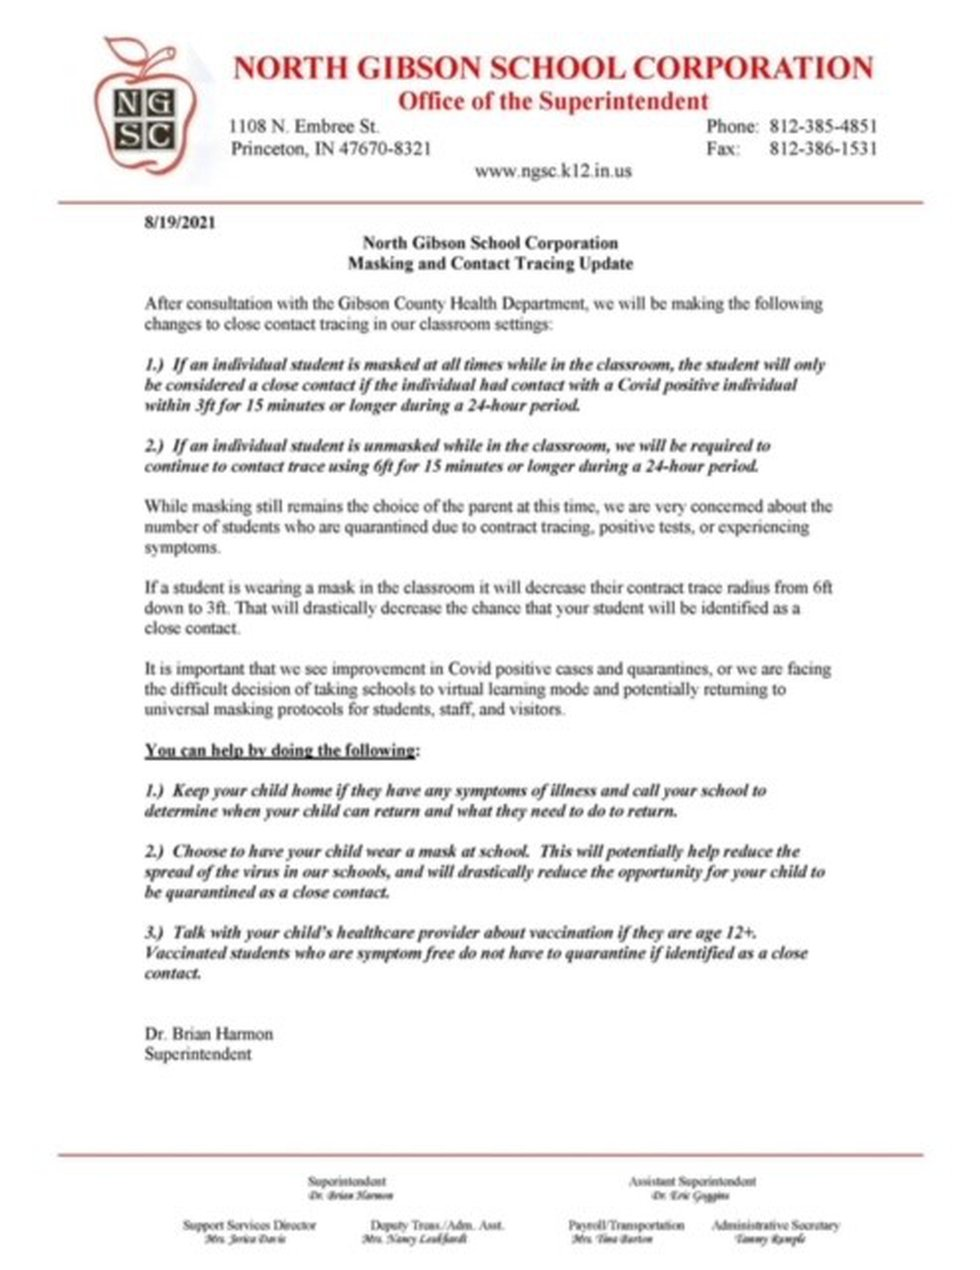 East and North Gibson Co. Schools updated mask policy